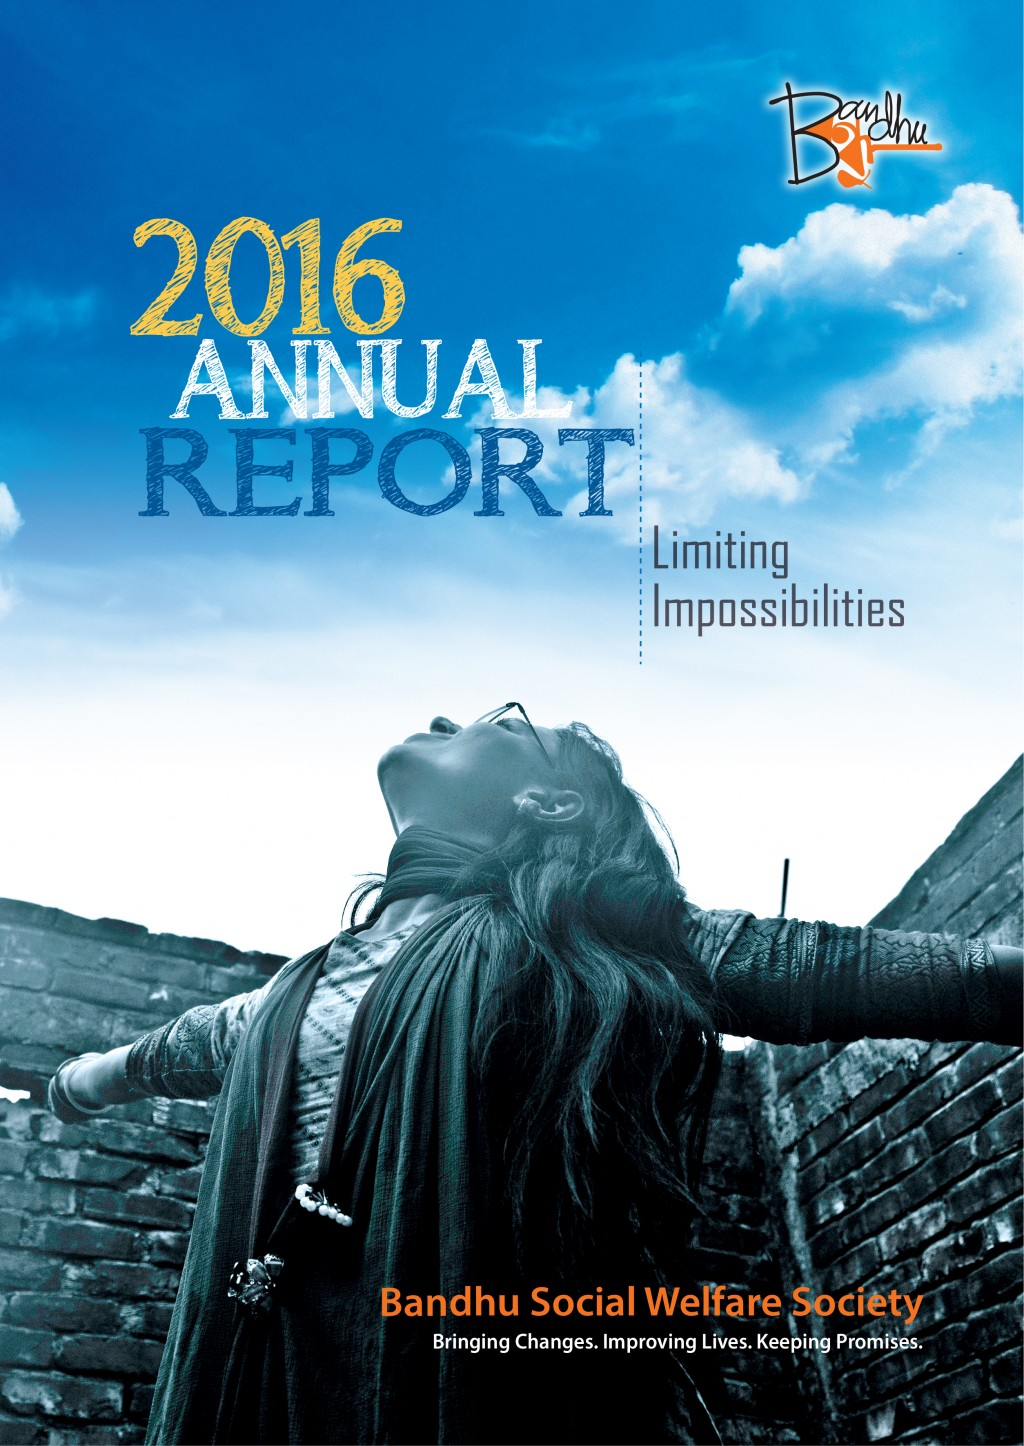 Annual Report 2016 of Bandhu